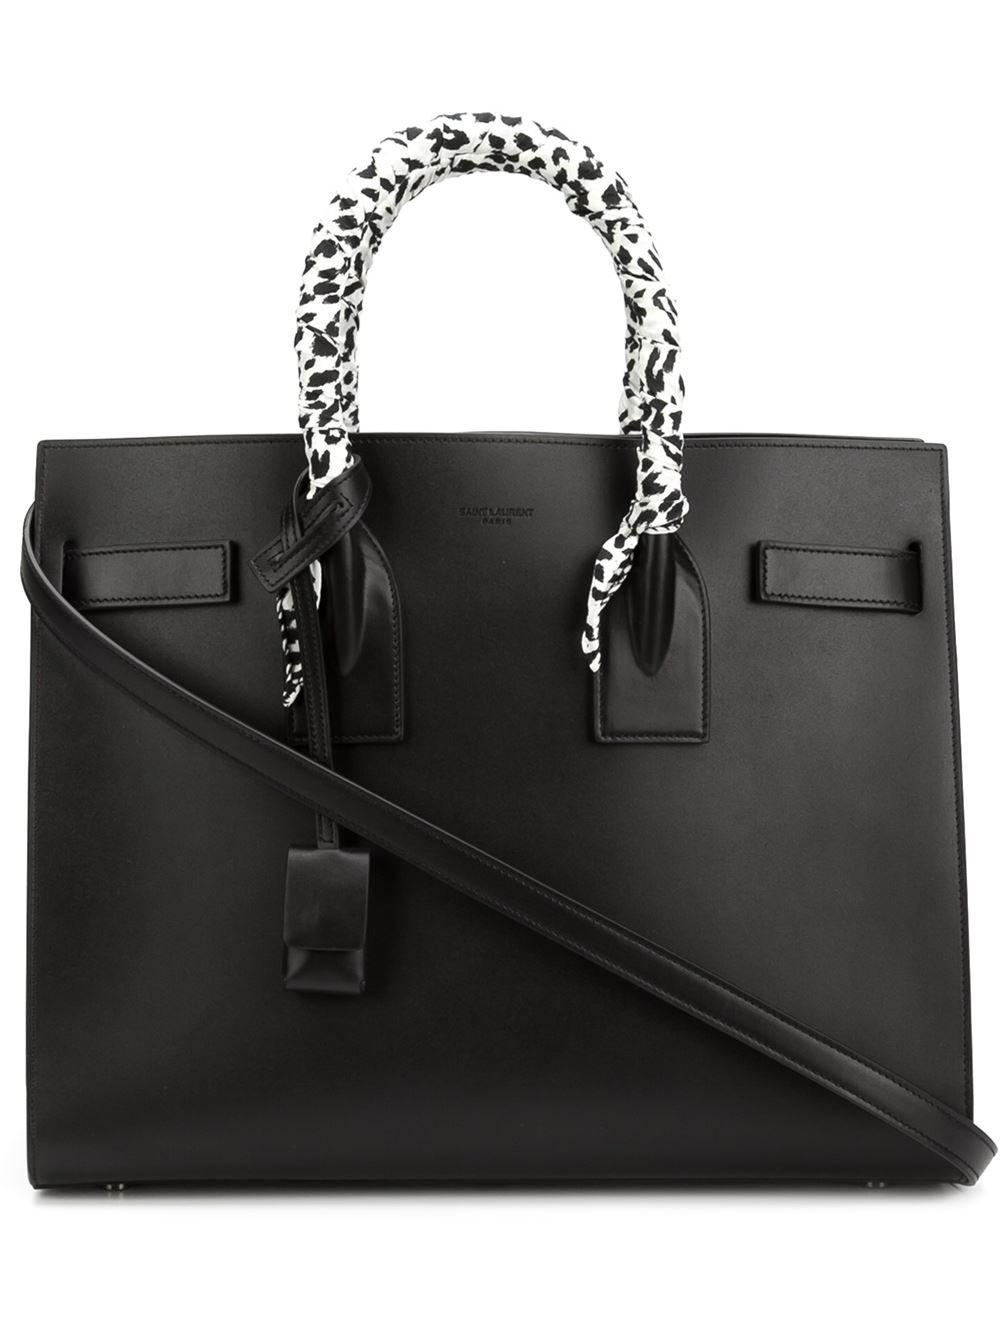 saint laurent baby sac de jour tote in black lyst. Black Bedroom Furniture Sets. Home Design Ideas